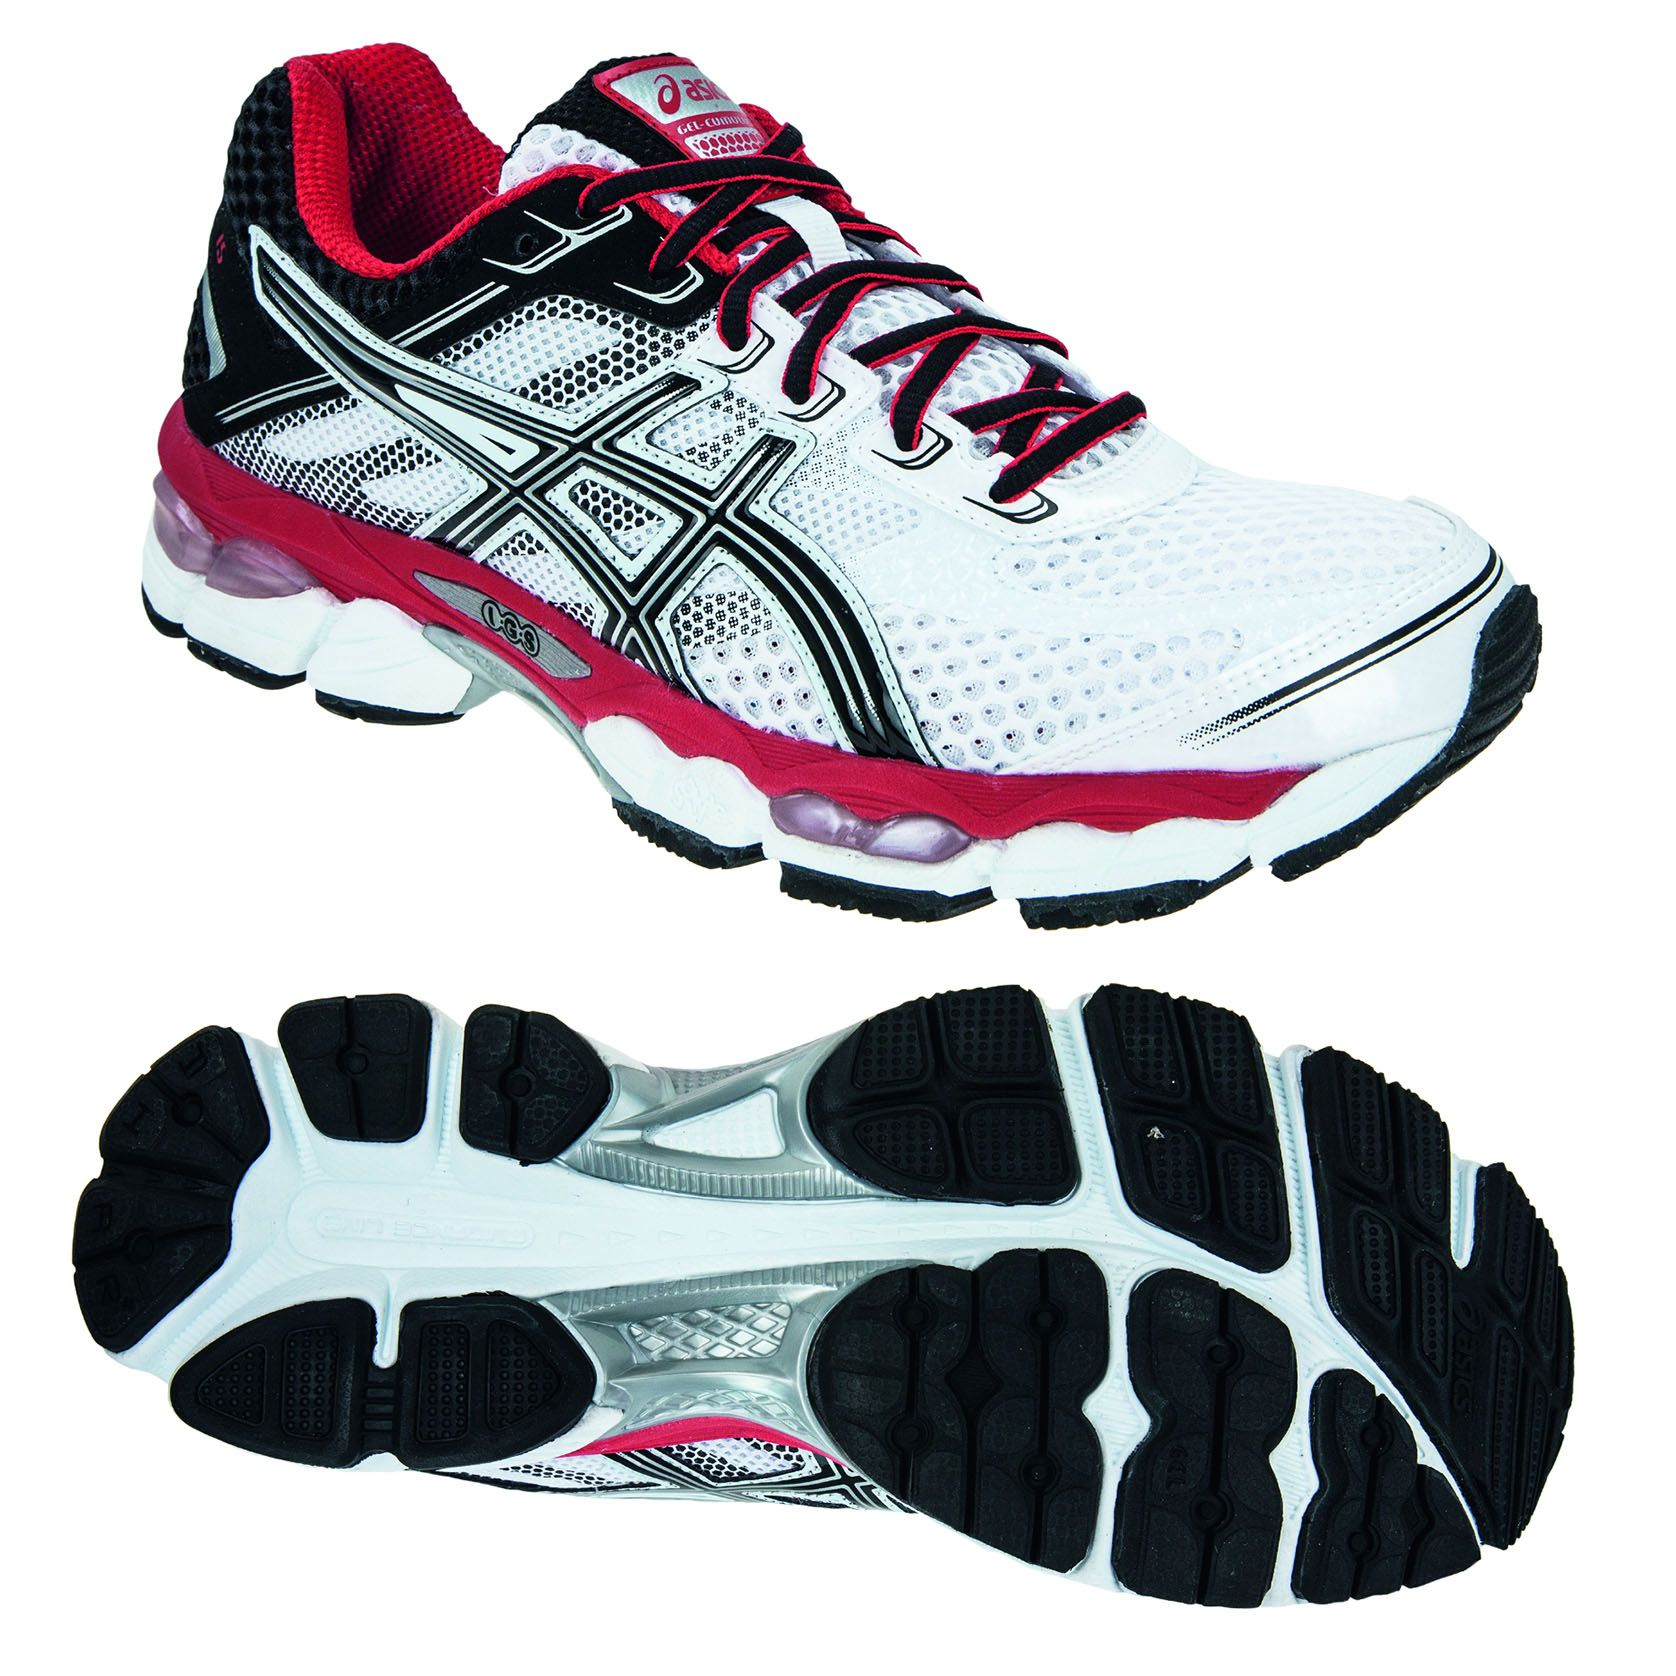 asics gel cumulus 15 mens running shoes sweatband